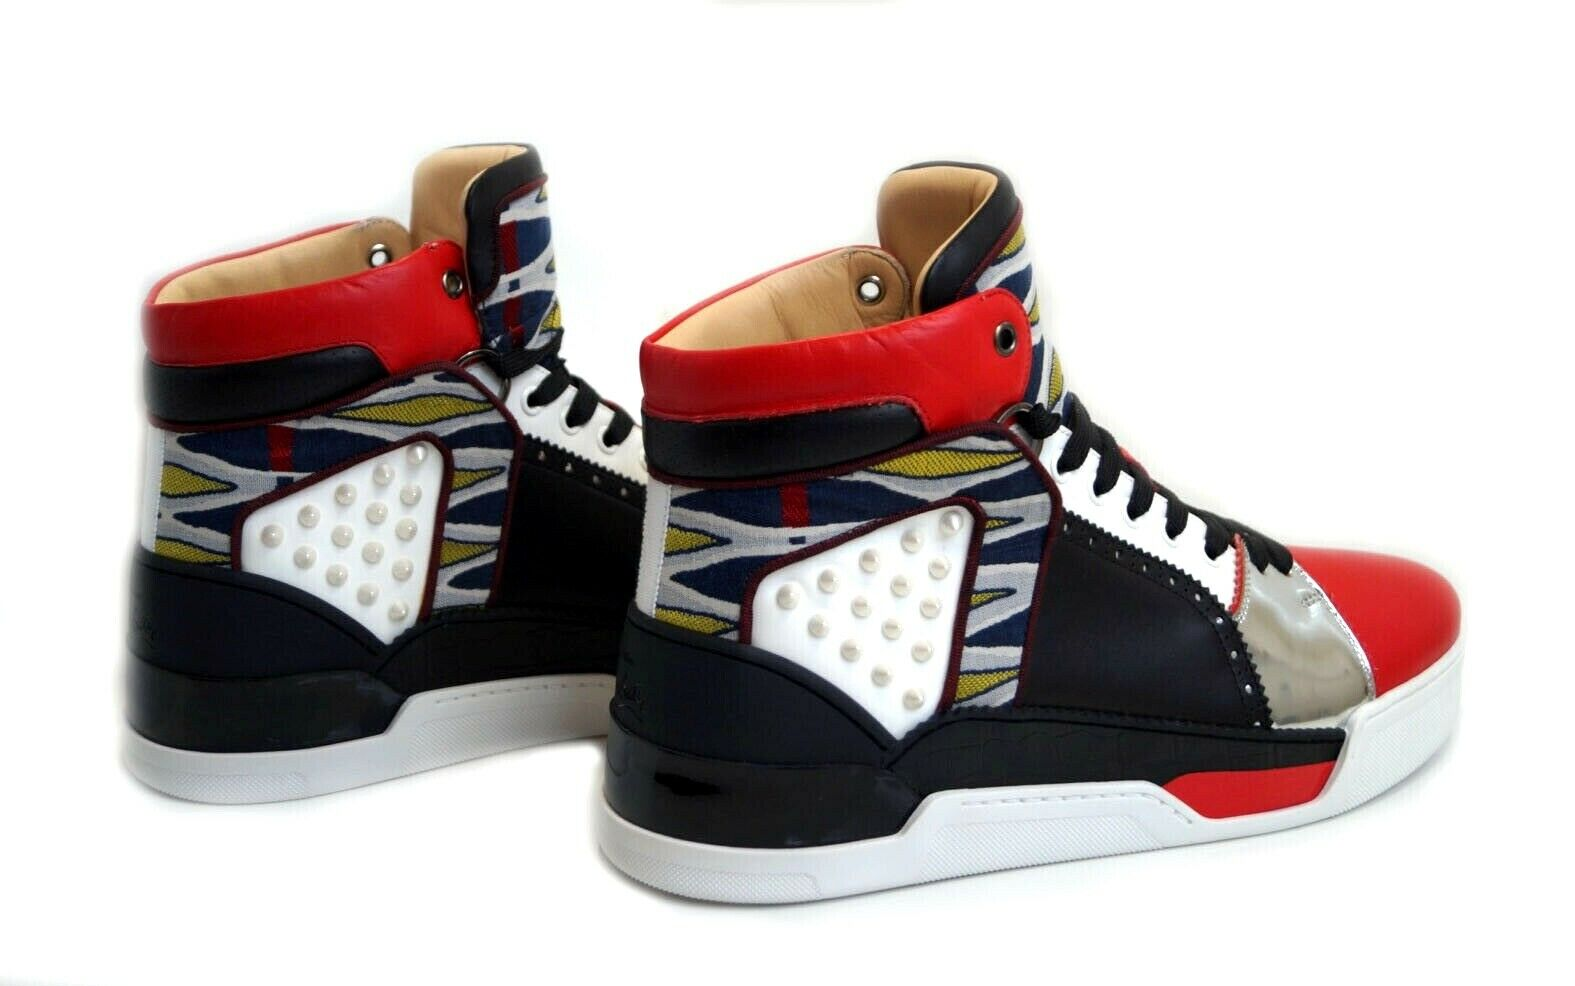 Details zu CHRISTIAN LOUBOUTIN Loubikick Flat Multi Layered High Top Sneakers